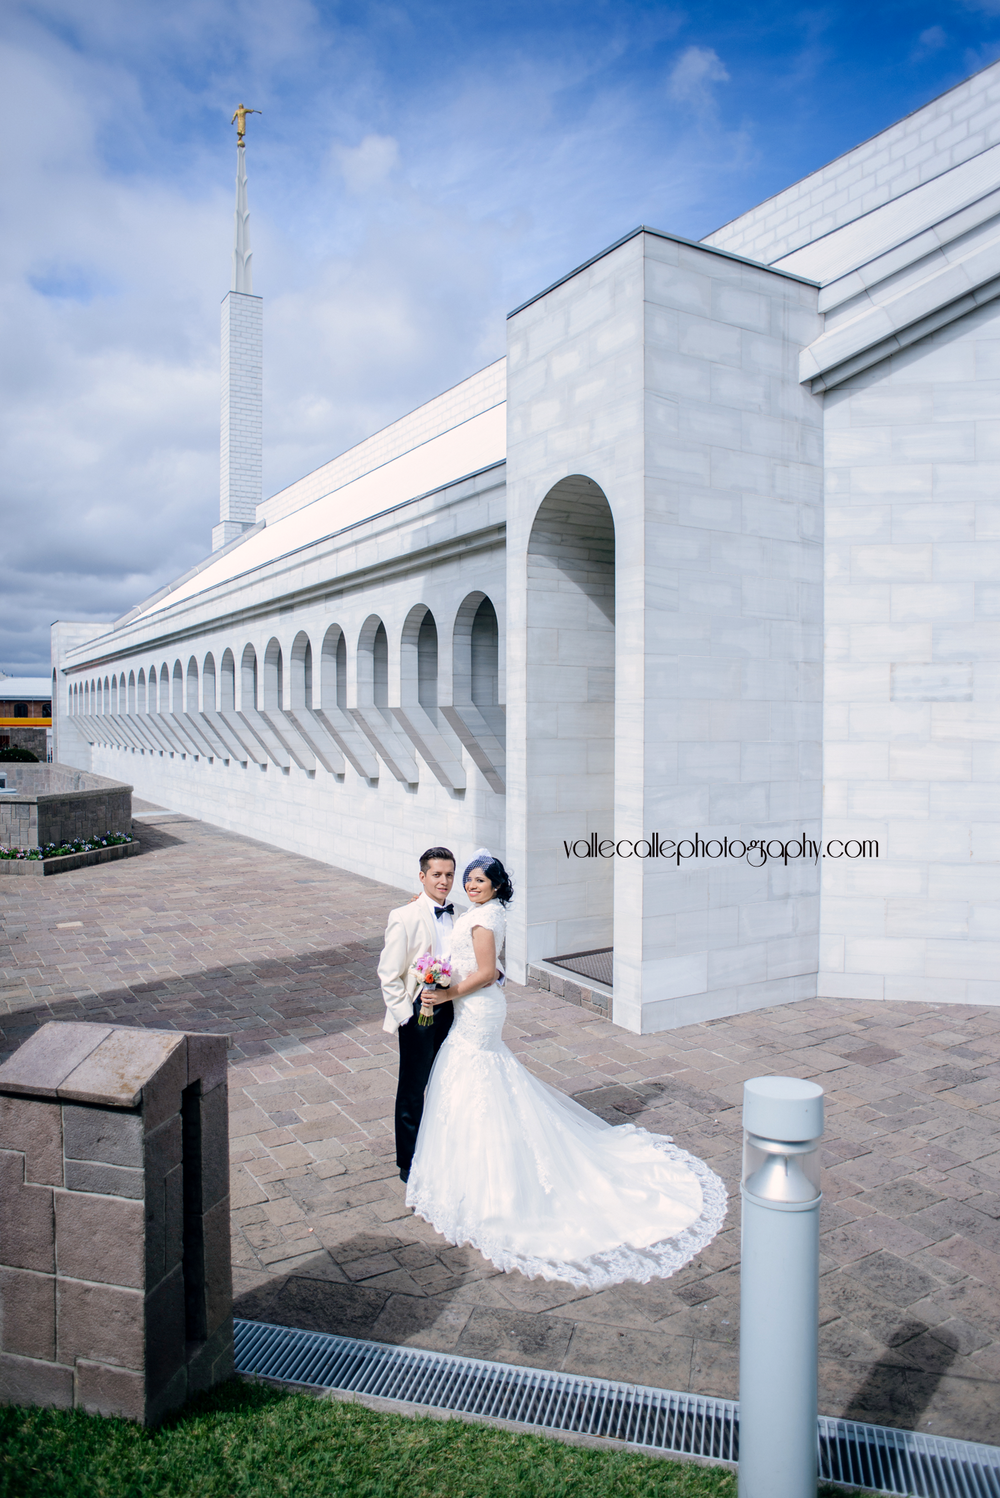 The most challenging part about this photo??? Trying to keep random people (not guests, but RANDOM people lol) from photobombing this image +_+, but the final image was so worth it! I've seen other photographer's take of bride & groom's photo in front of the temple, but I decided to give it a twist... and I like it!!!